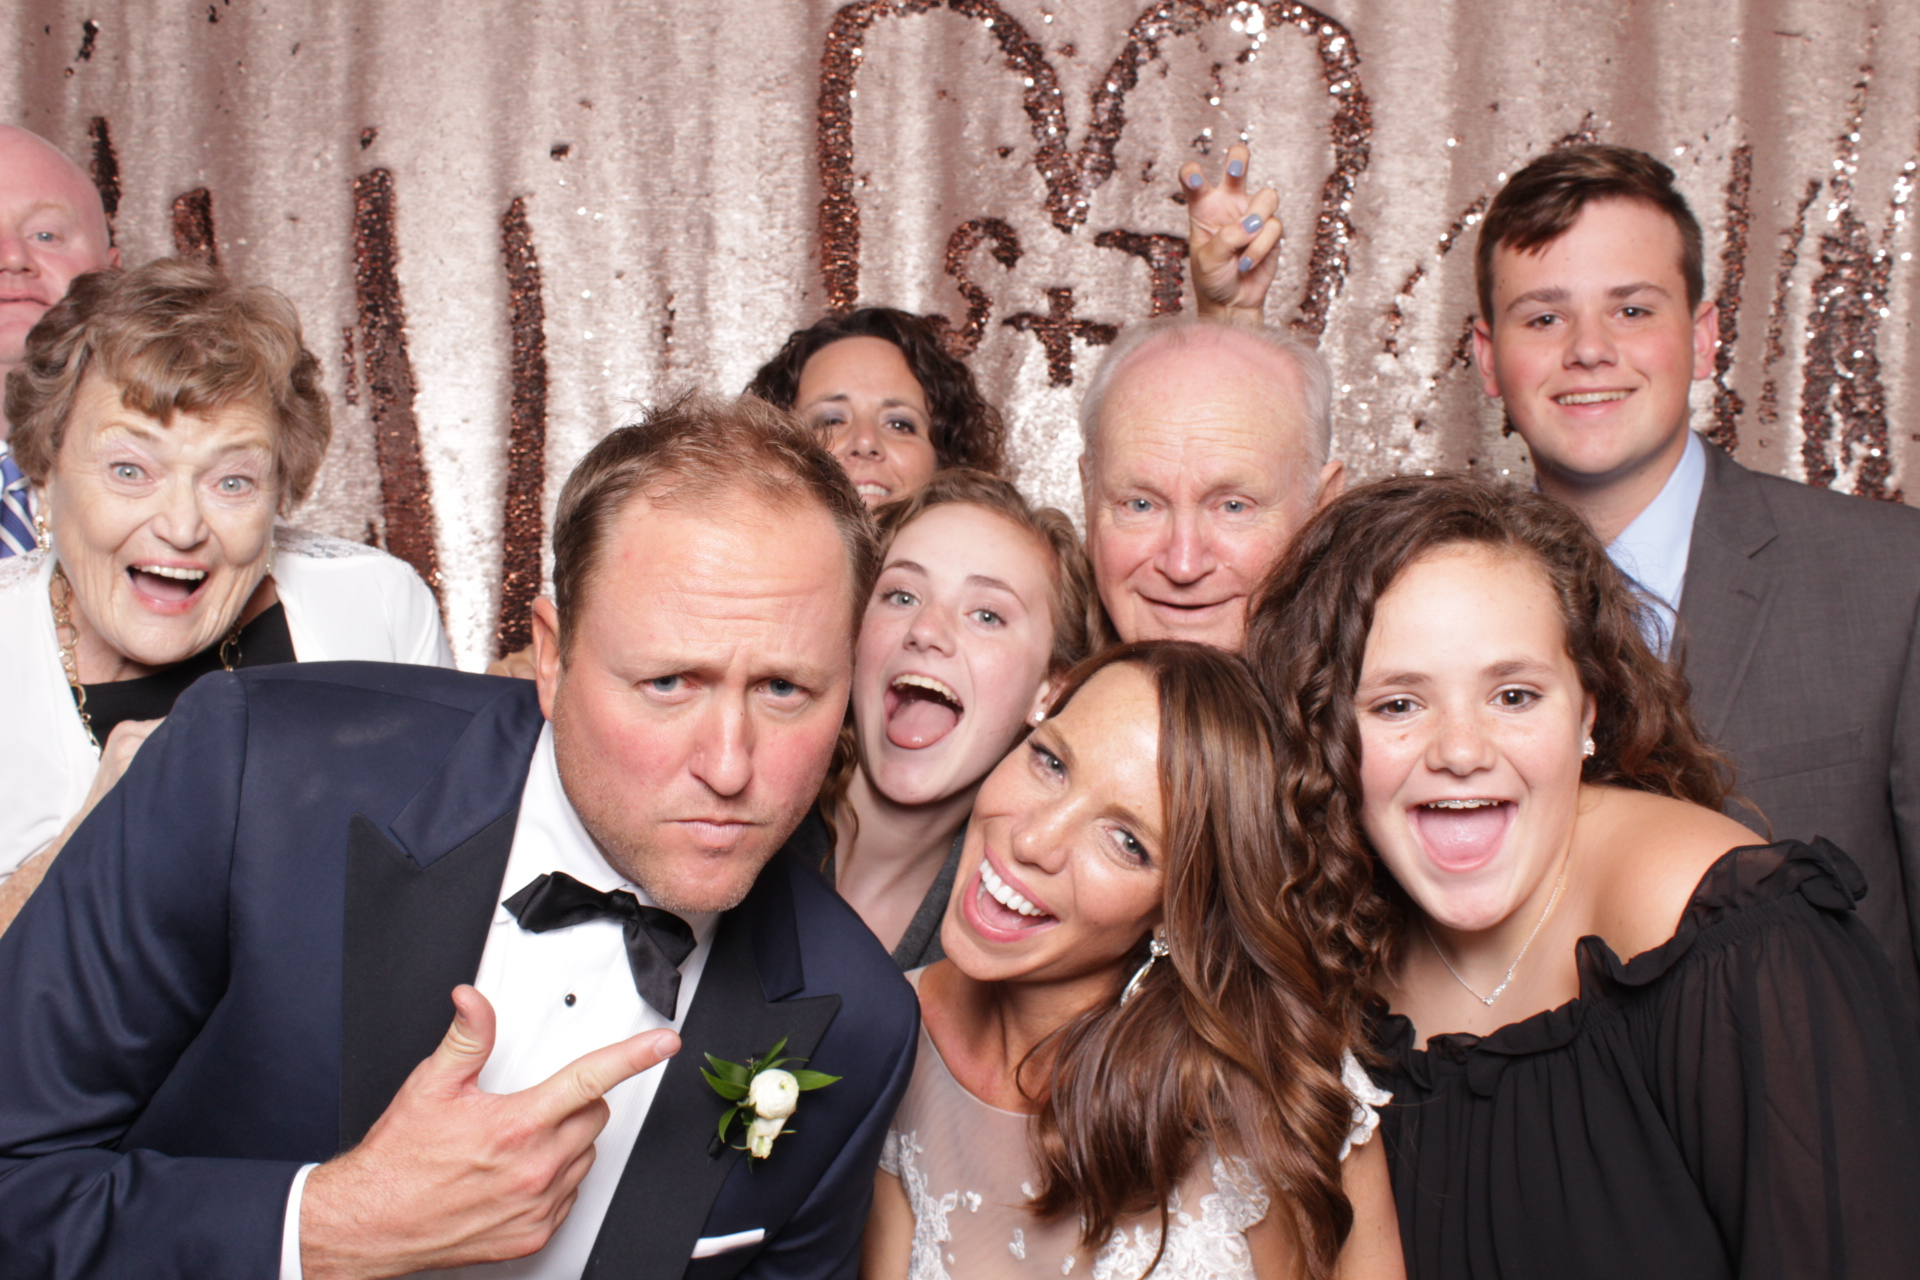 Minneapolis_Aria_Wedding_Photo_Booth.jpg